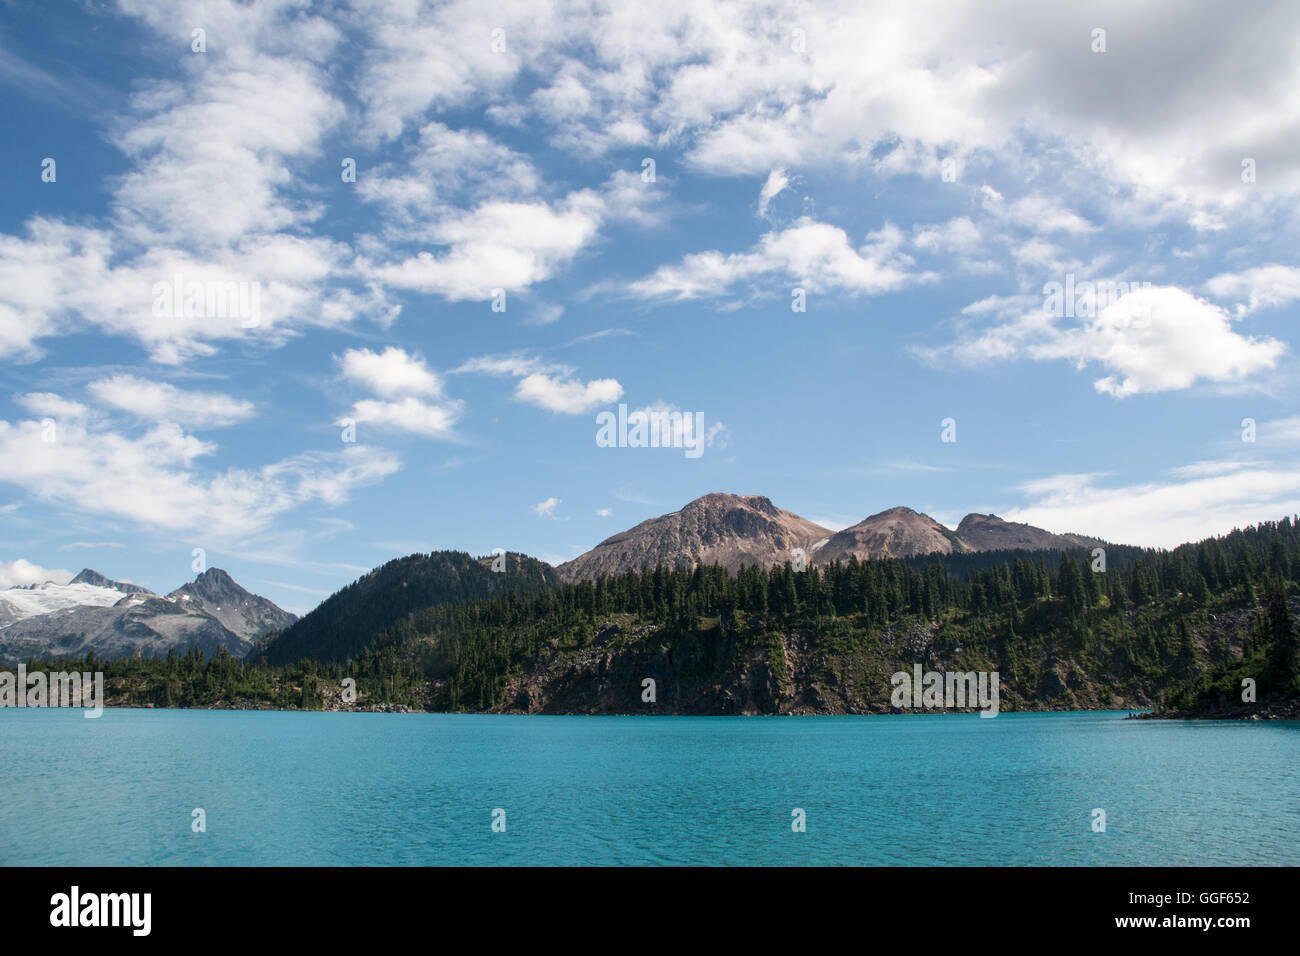 The blue waters of the glacial Garibaldi Lake, in the provincial park of the same name, British Columbia, Canada Stock Photo